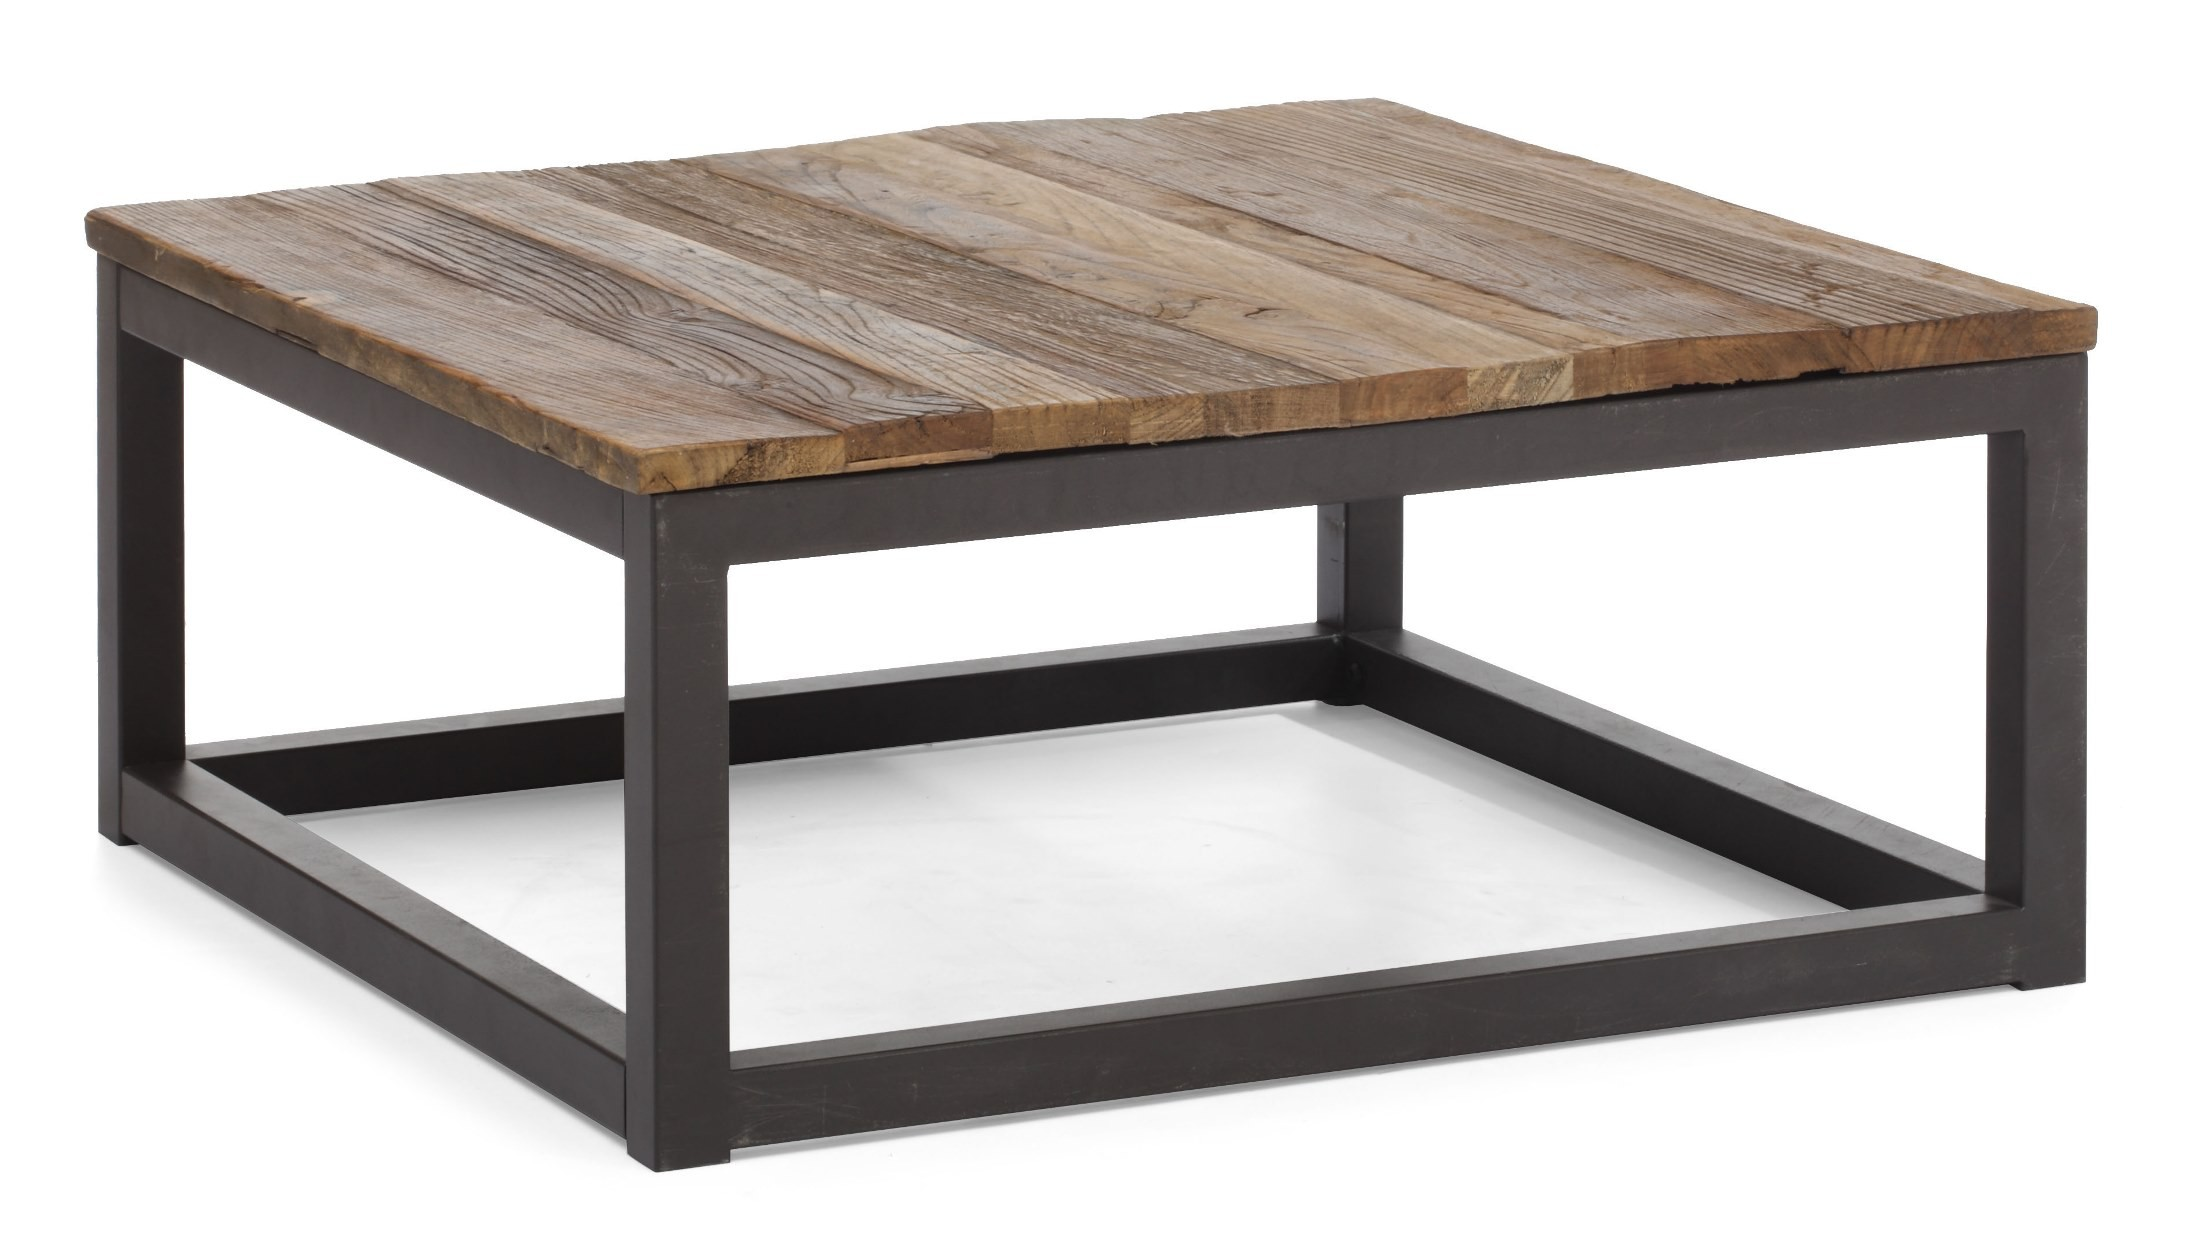 Civic center distressed natural square coffee table from for Center coffee table furniture